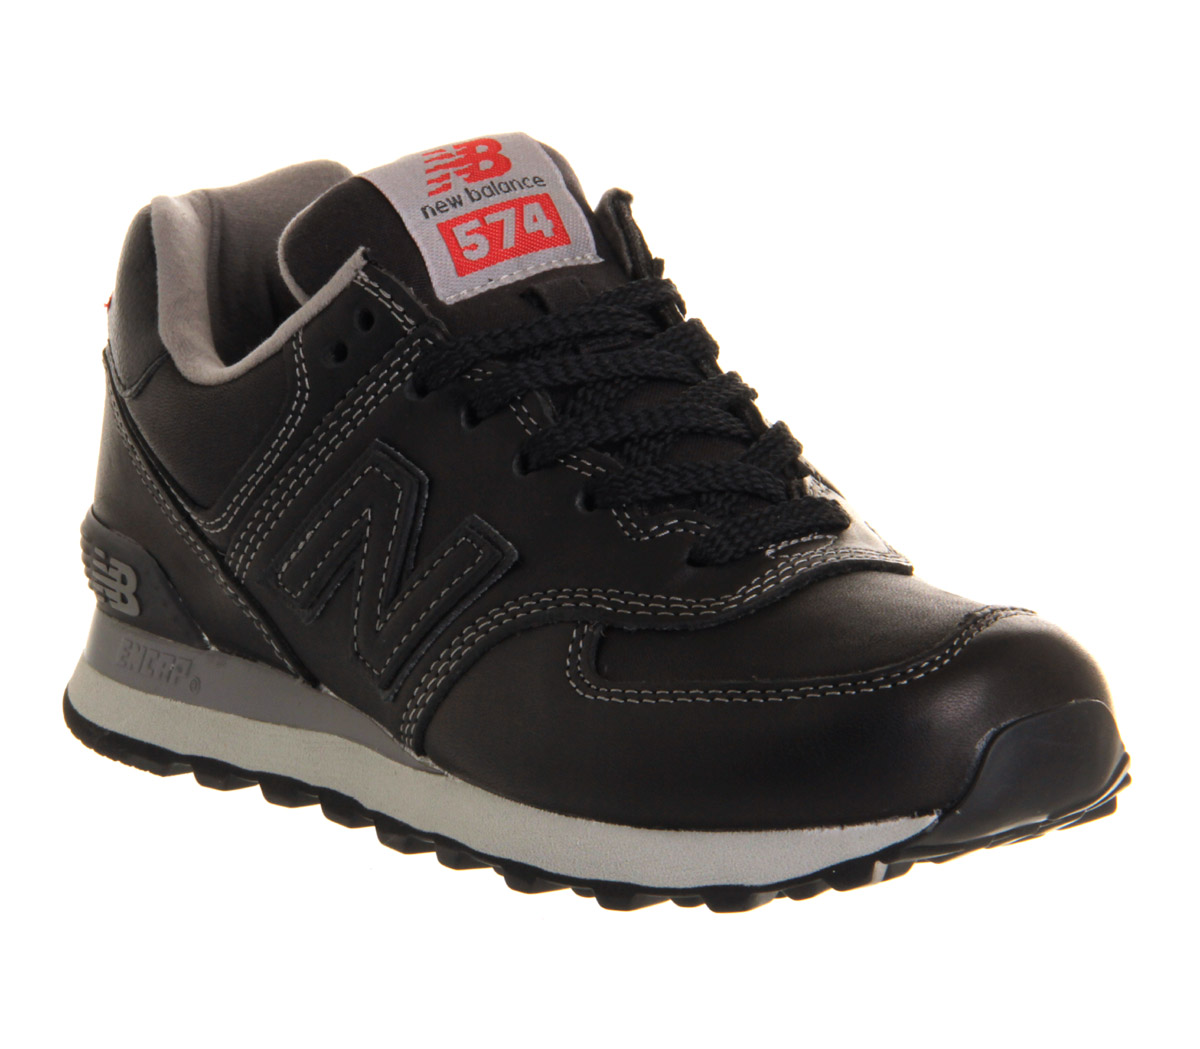 New-Balance-New-Balance-M574-BLACK-LEATHER-Trainers-Shoes